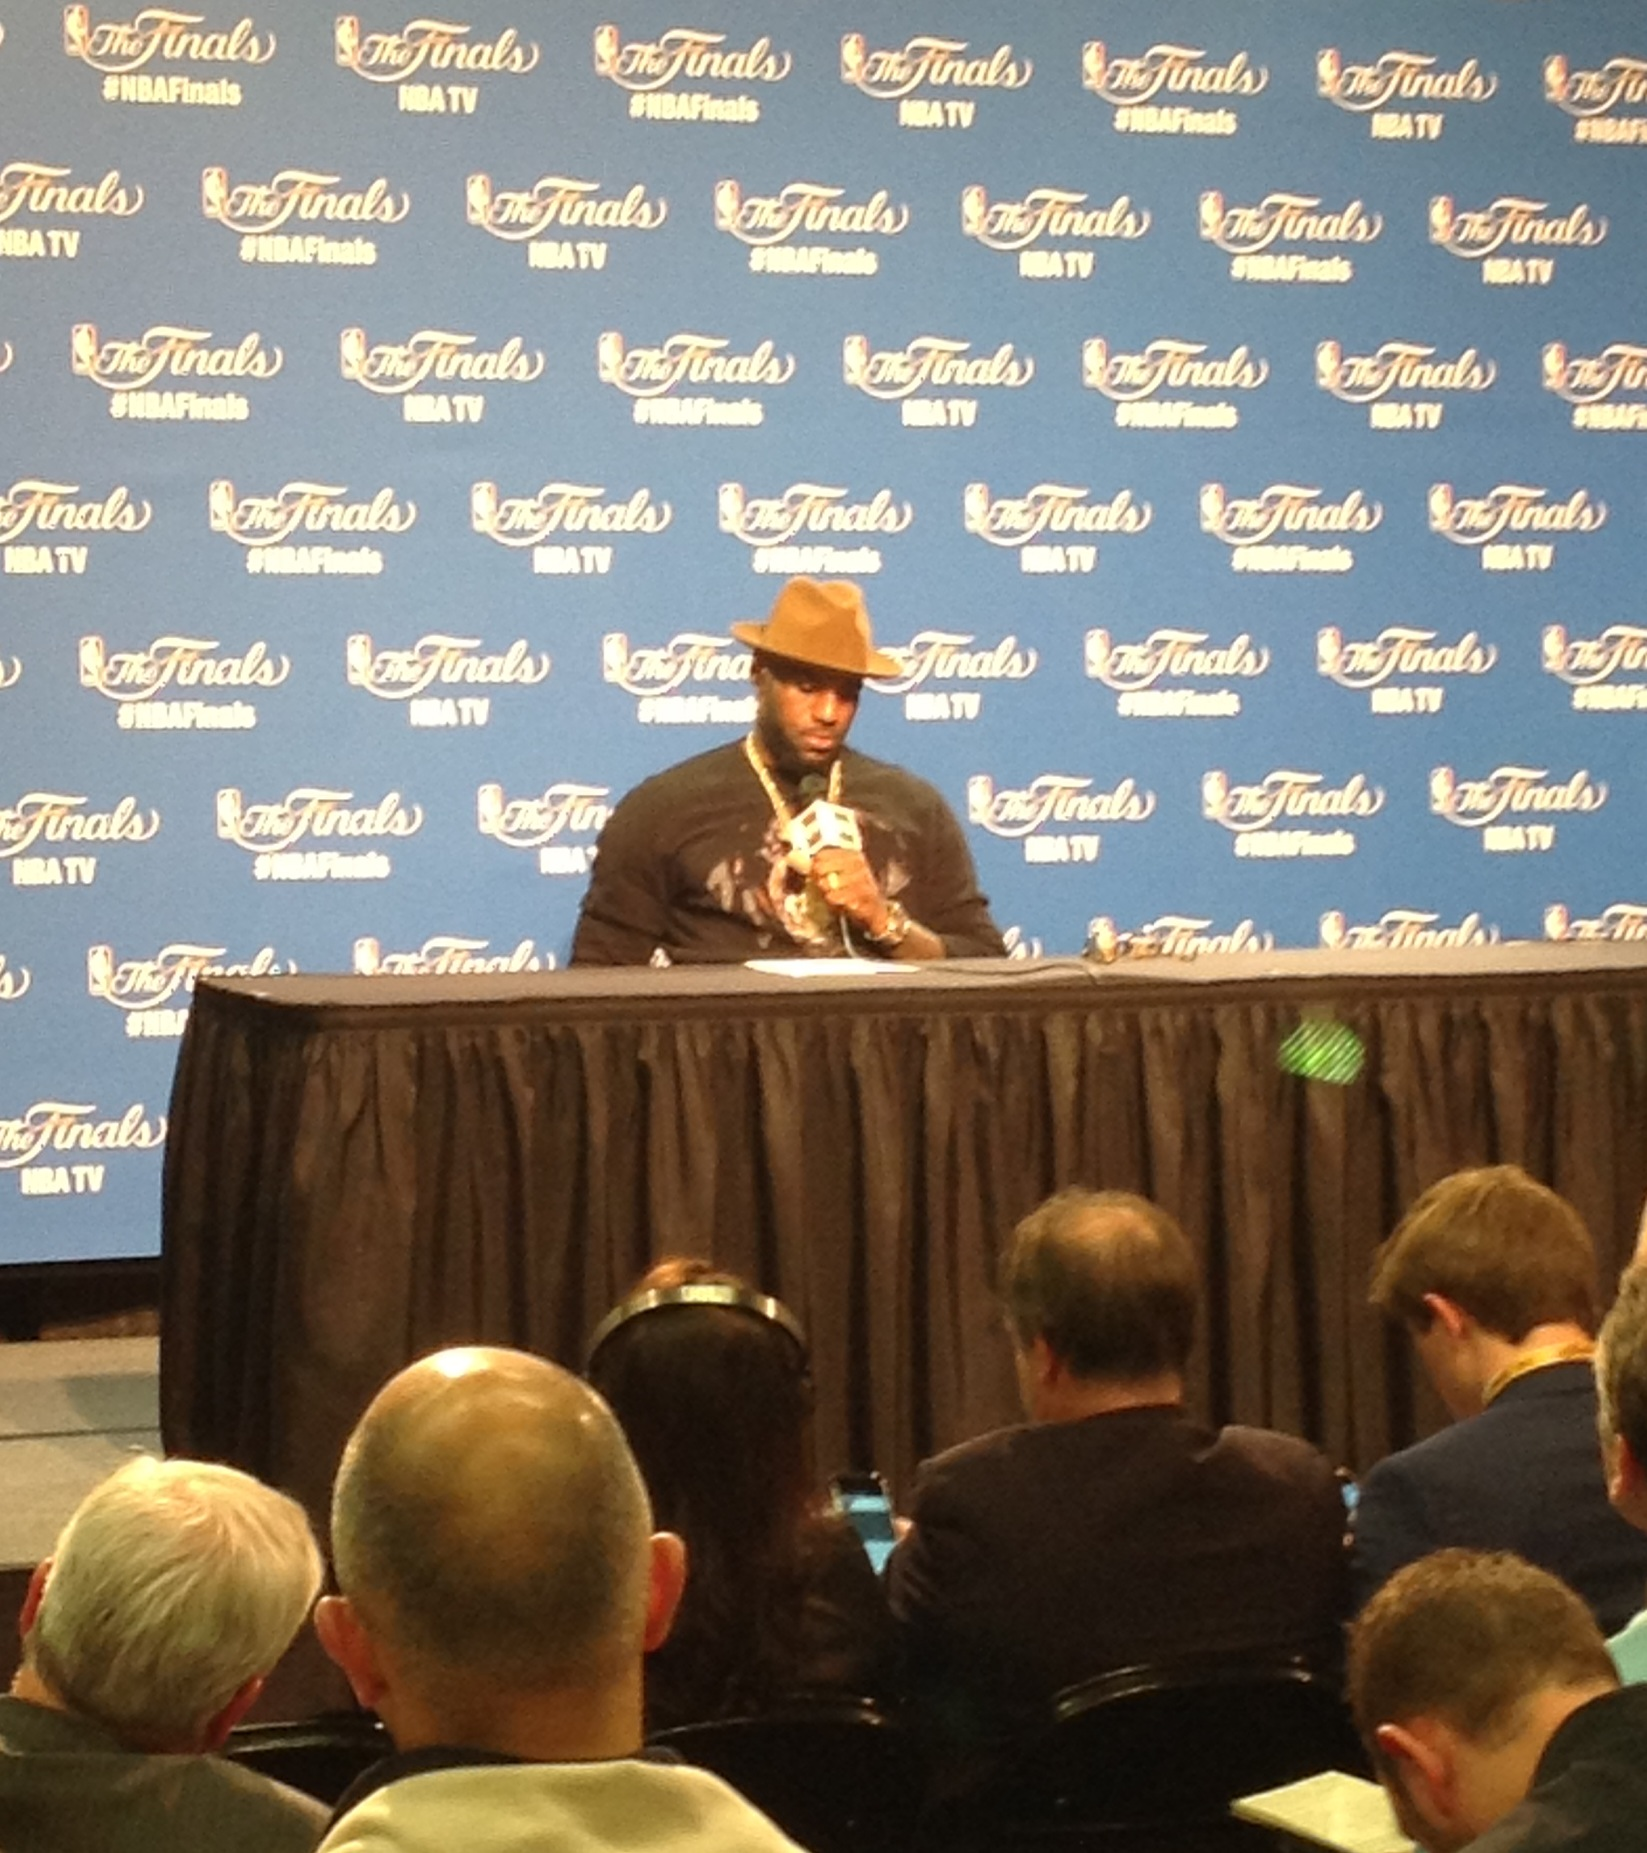 LeBron James Postgame Photo - Game 3 - NBA Finals